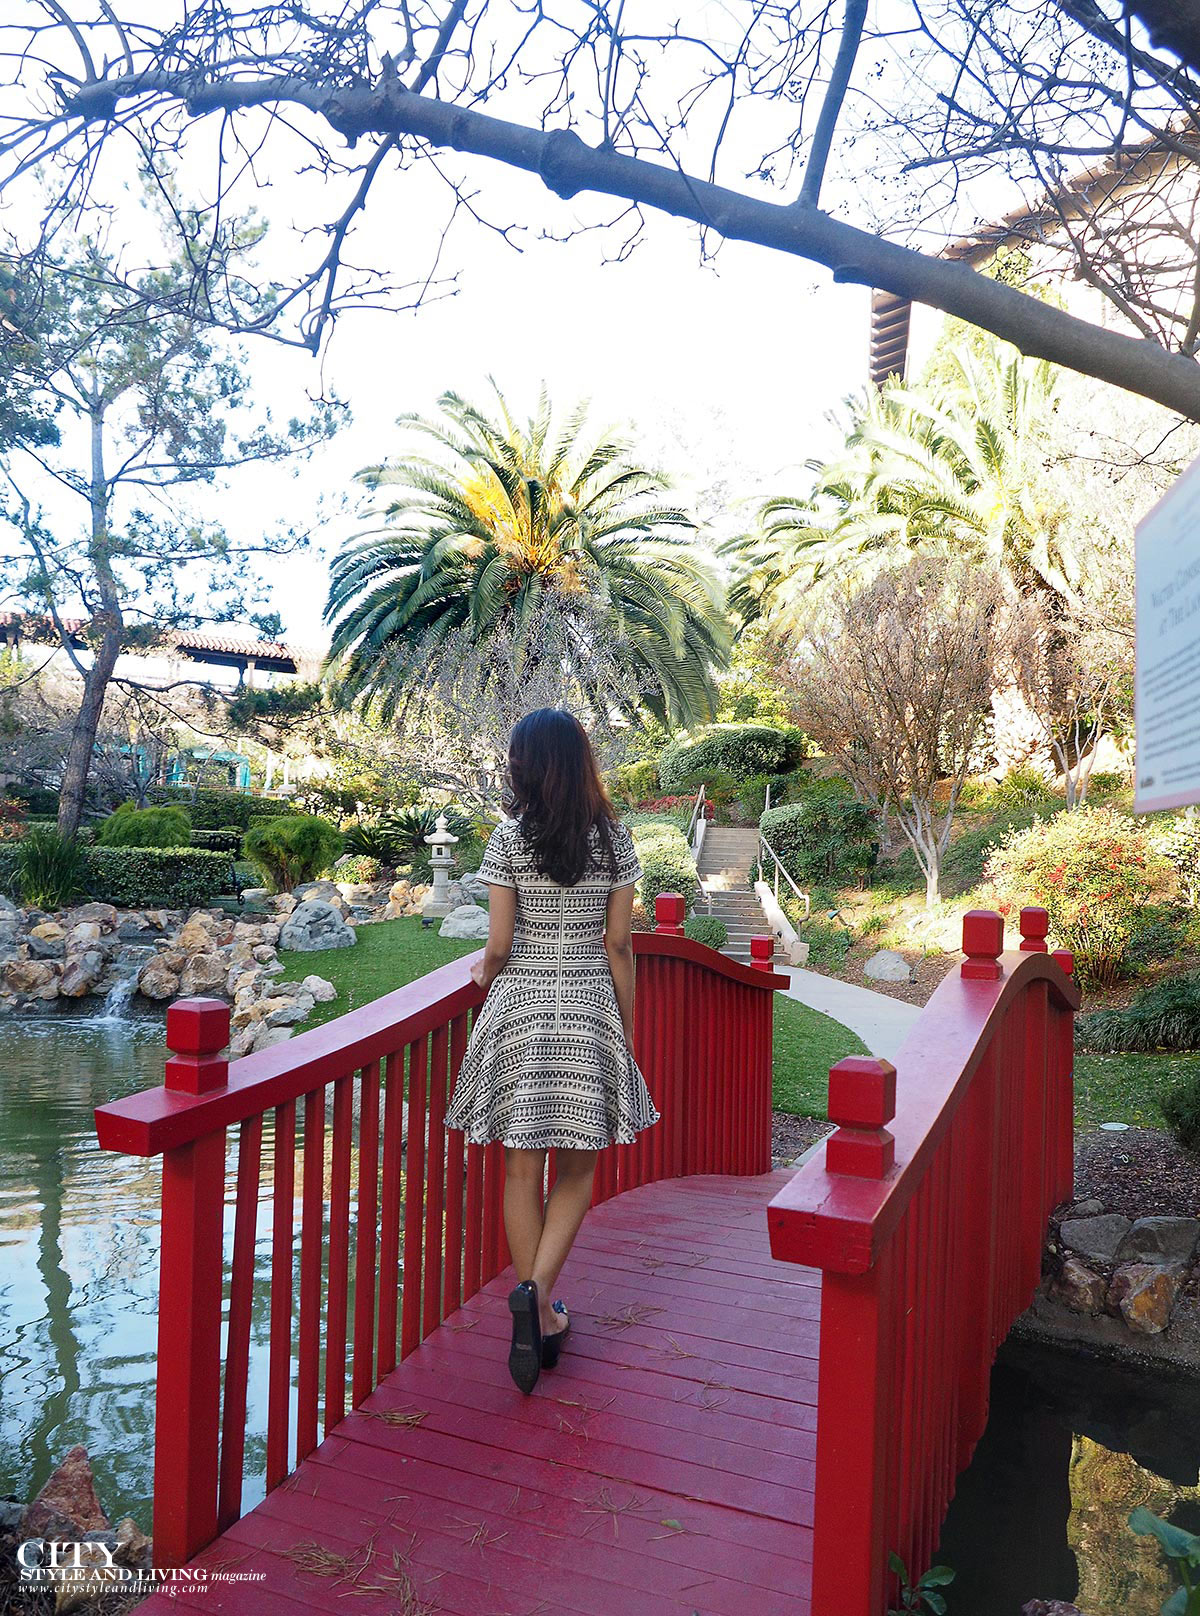 City style and living magazine japanese garden bridge langham pasadena